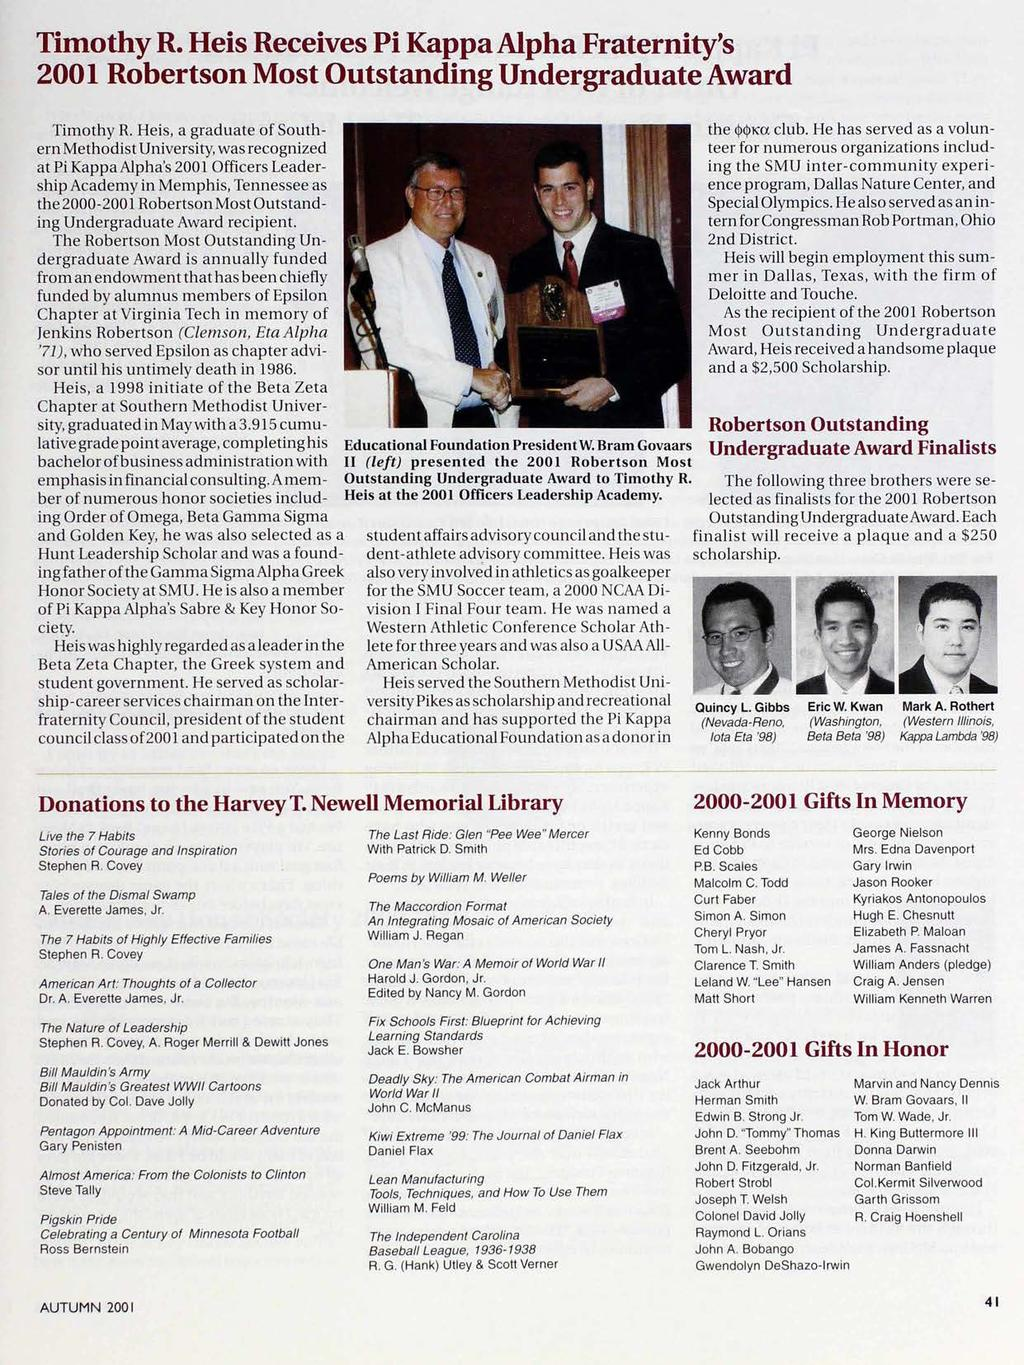 Timothy R. Heis Receives Pi Kappa Alpha Fraternity's 2001 Robertson Most Outstanding Undergraduate Award Timothy R.